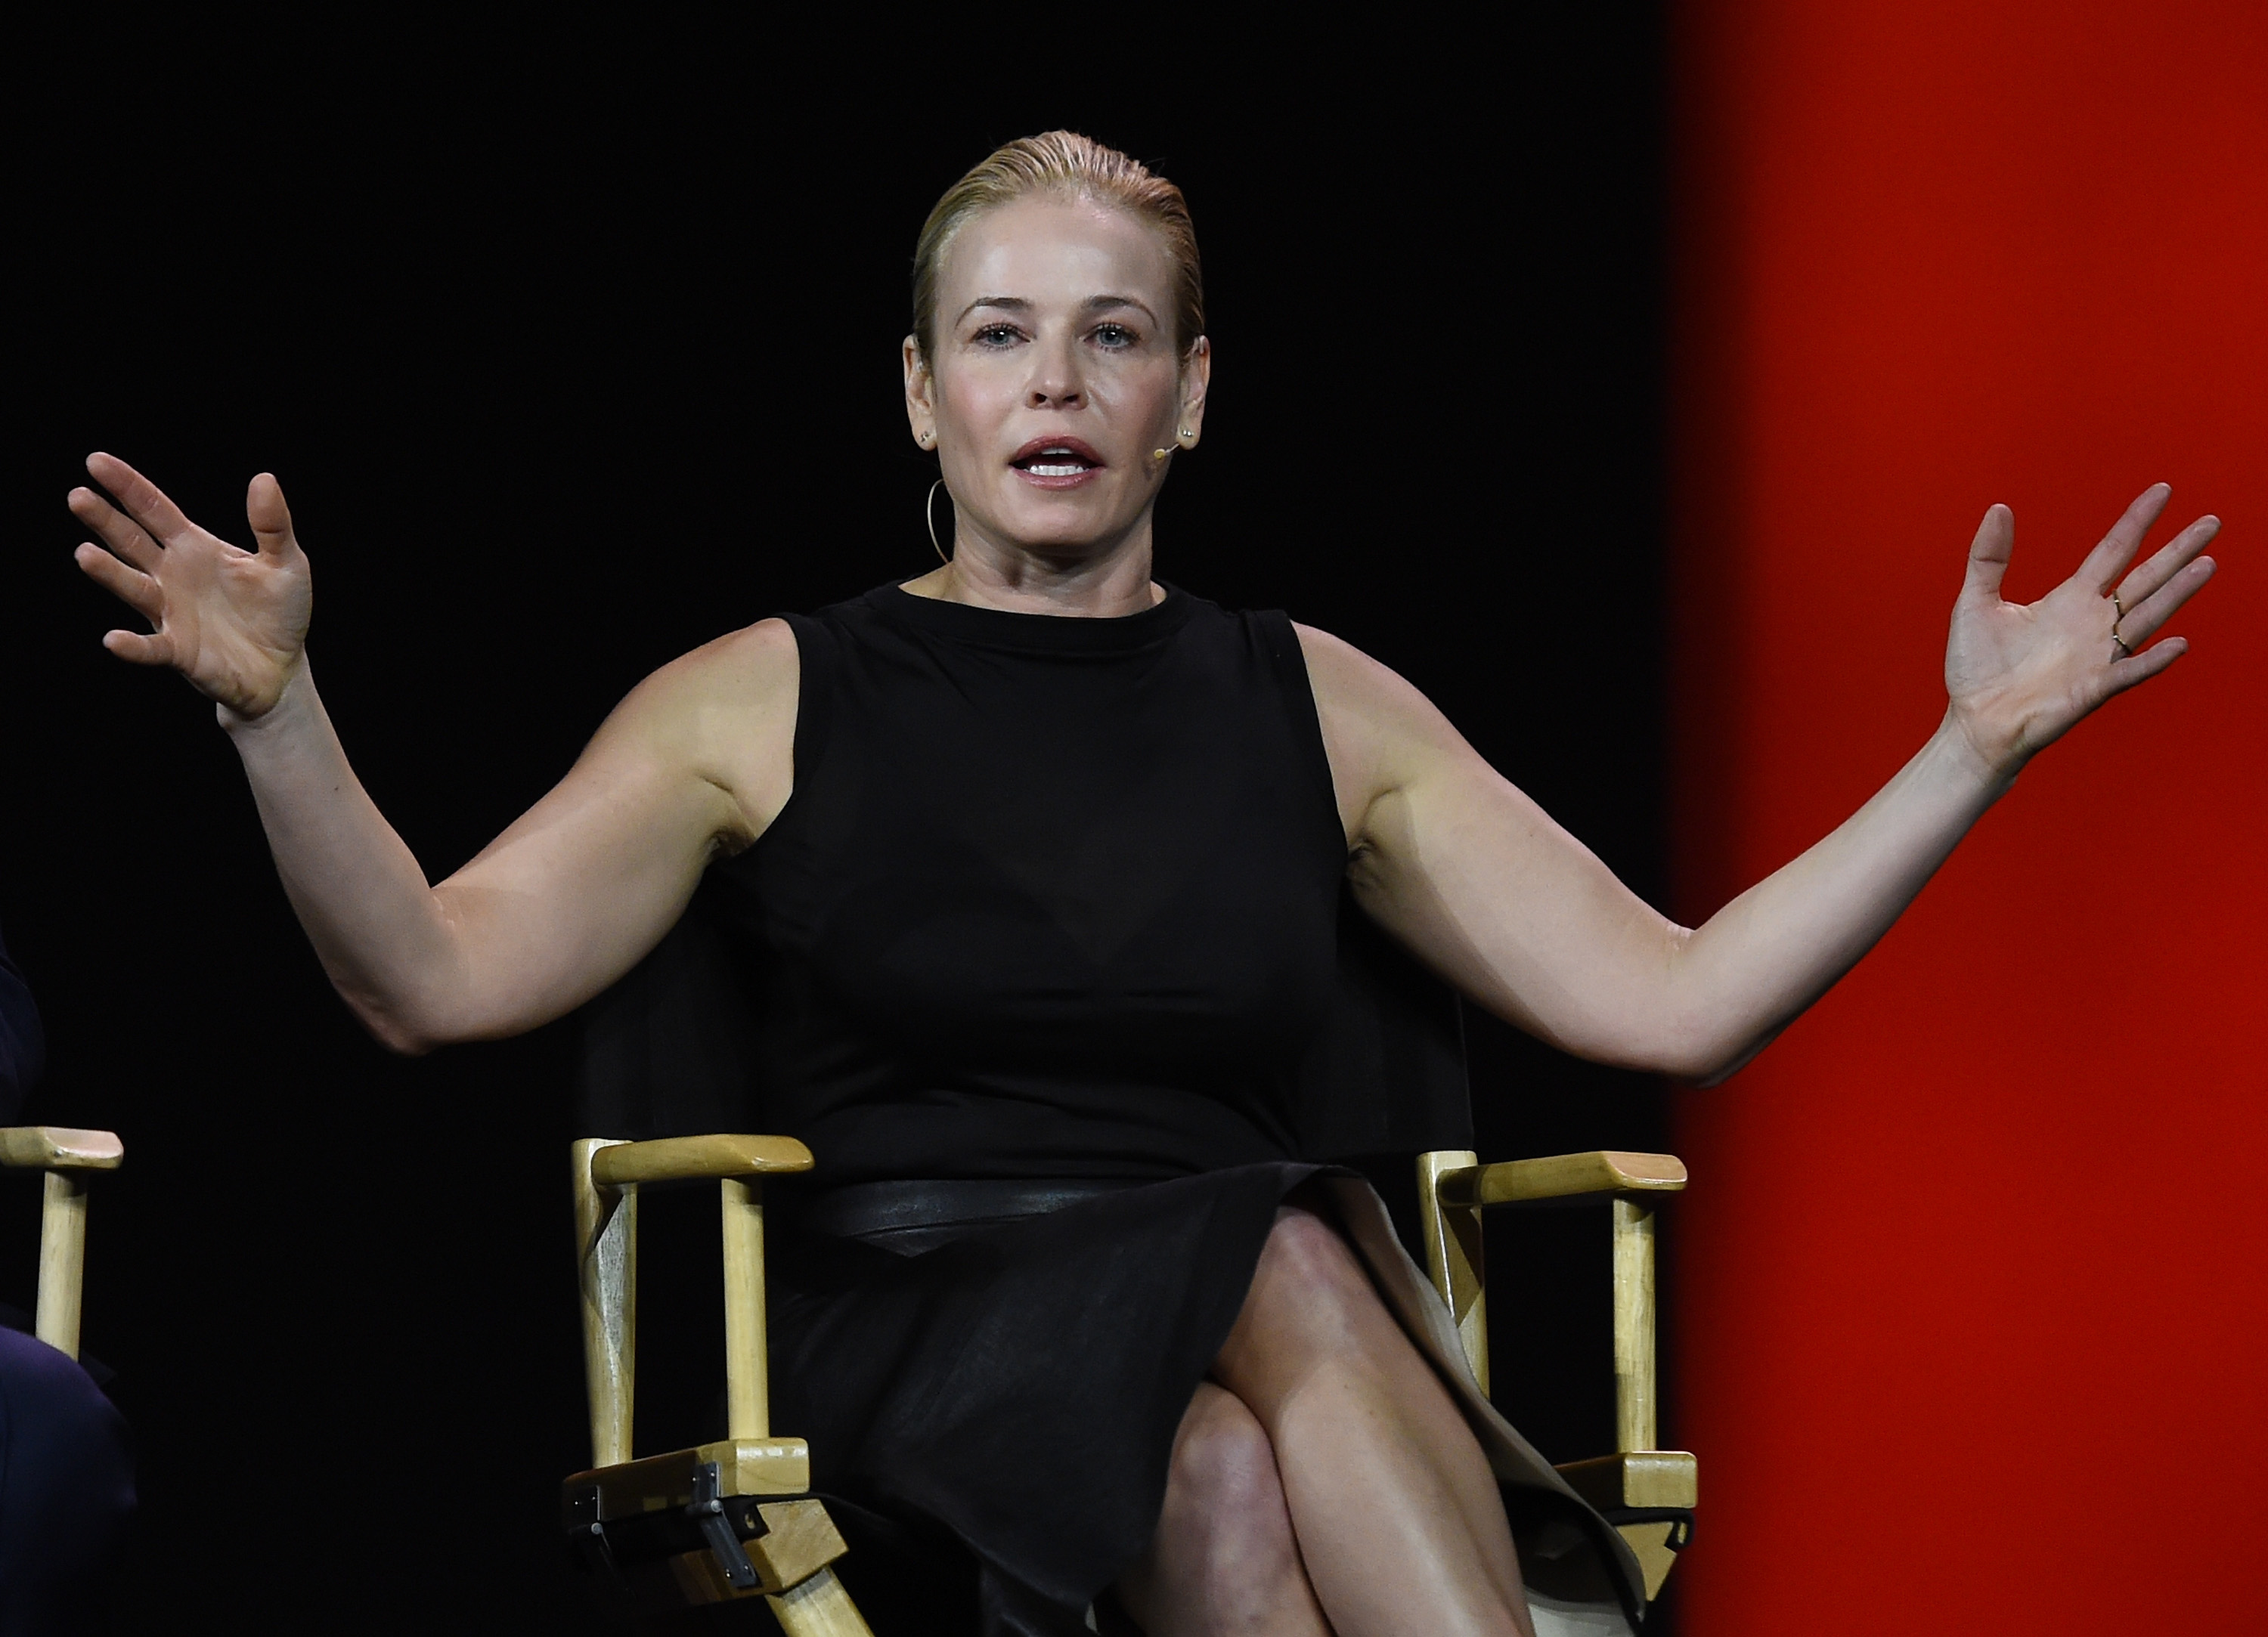 Chelsea Handler | Ethan Miller/Getty Images